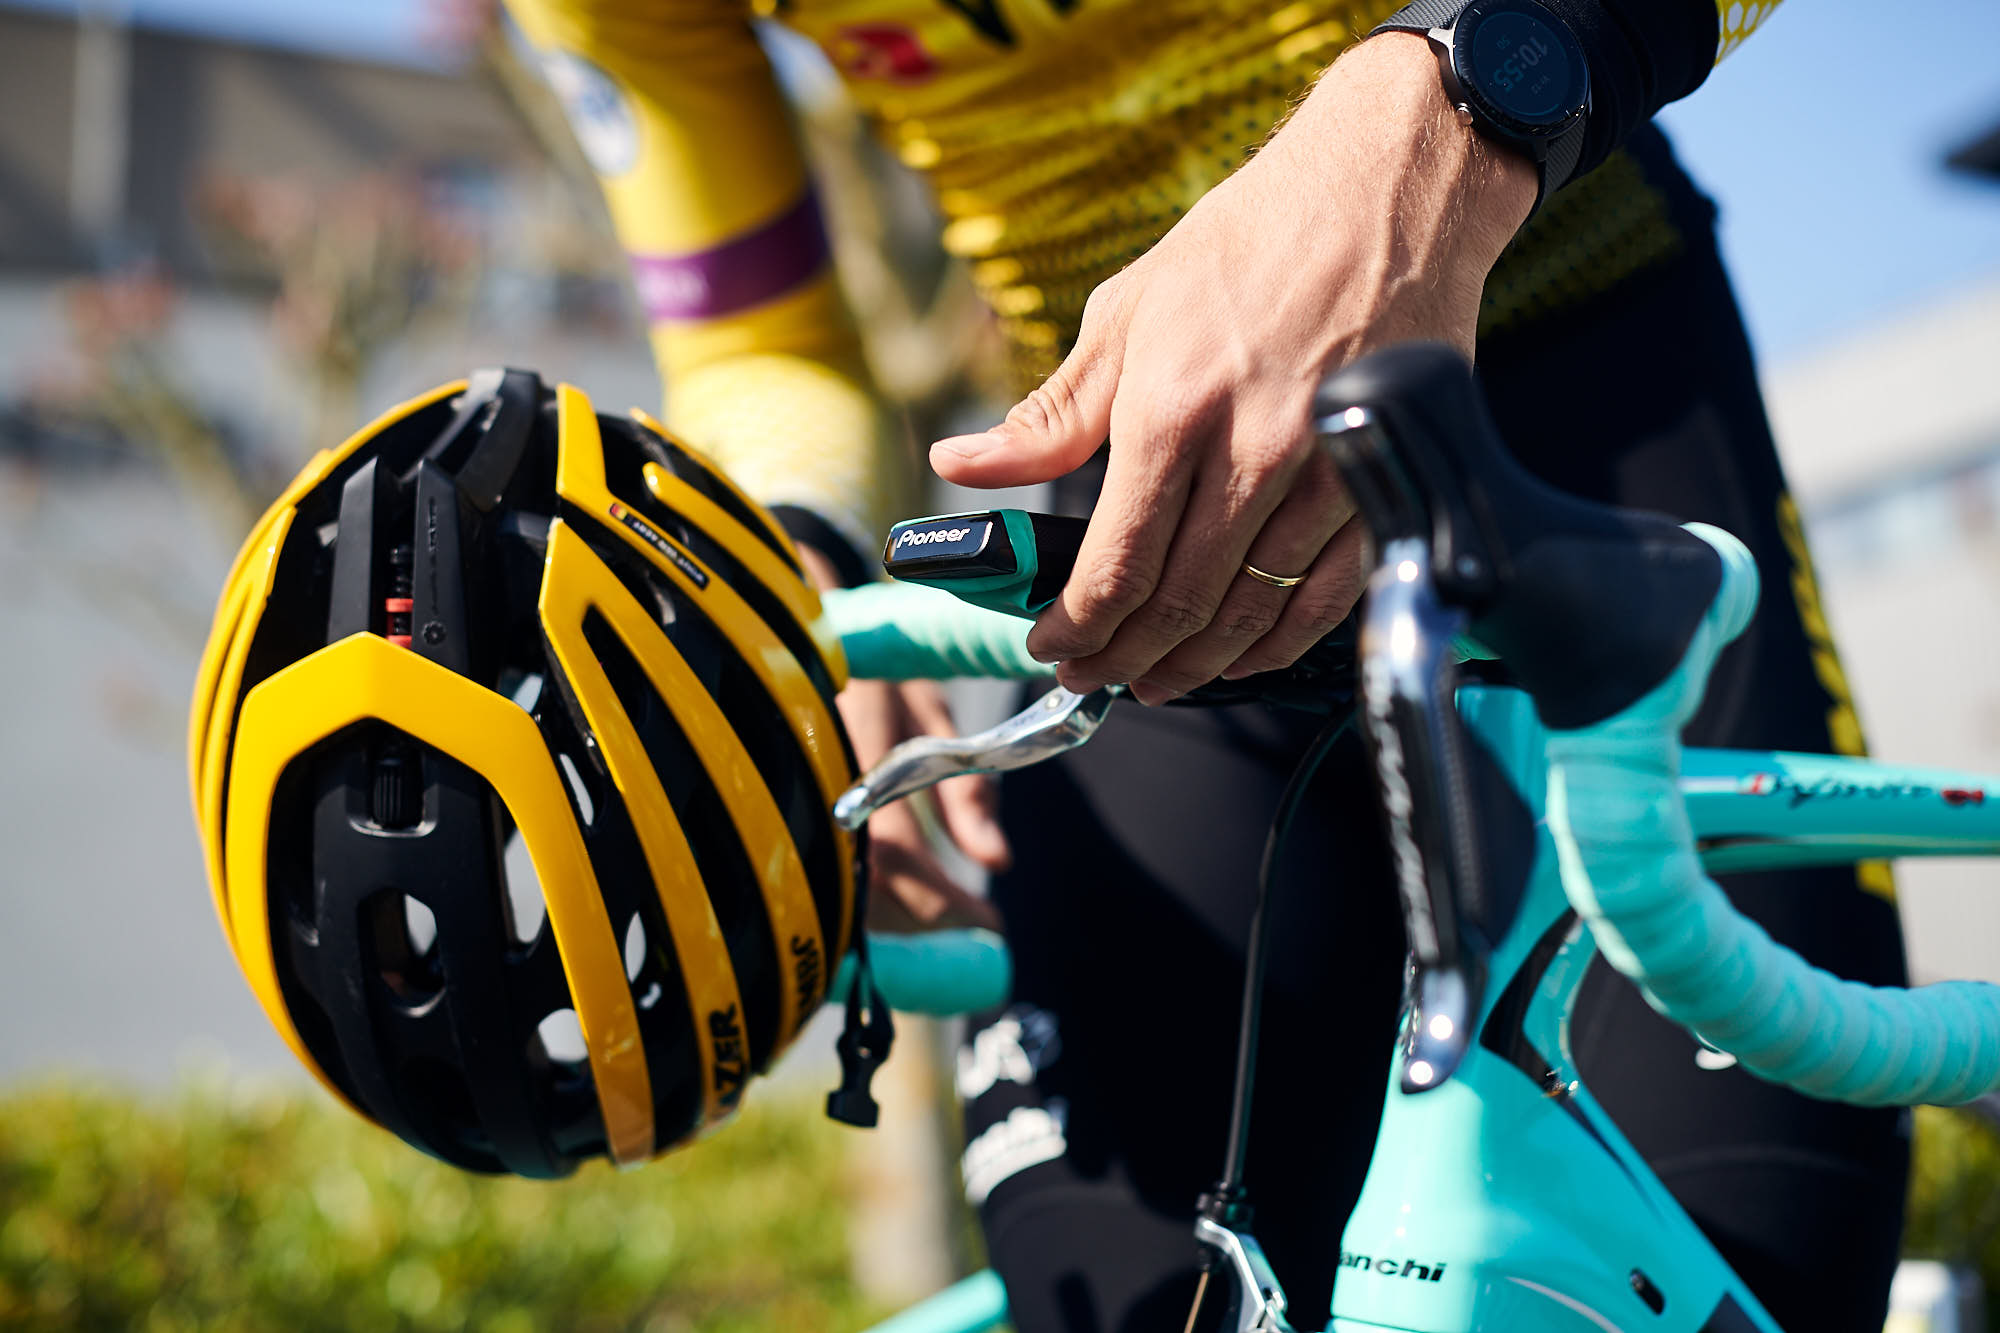 Putting a head unit on a Bianchi bike